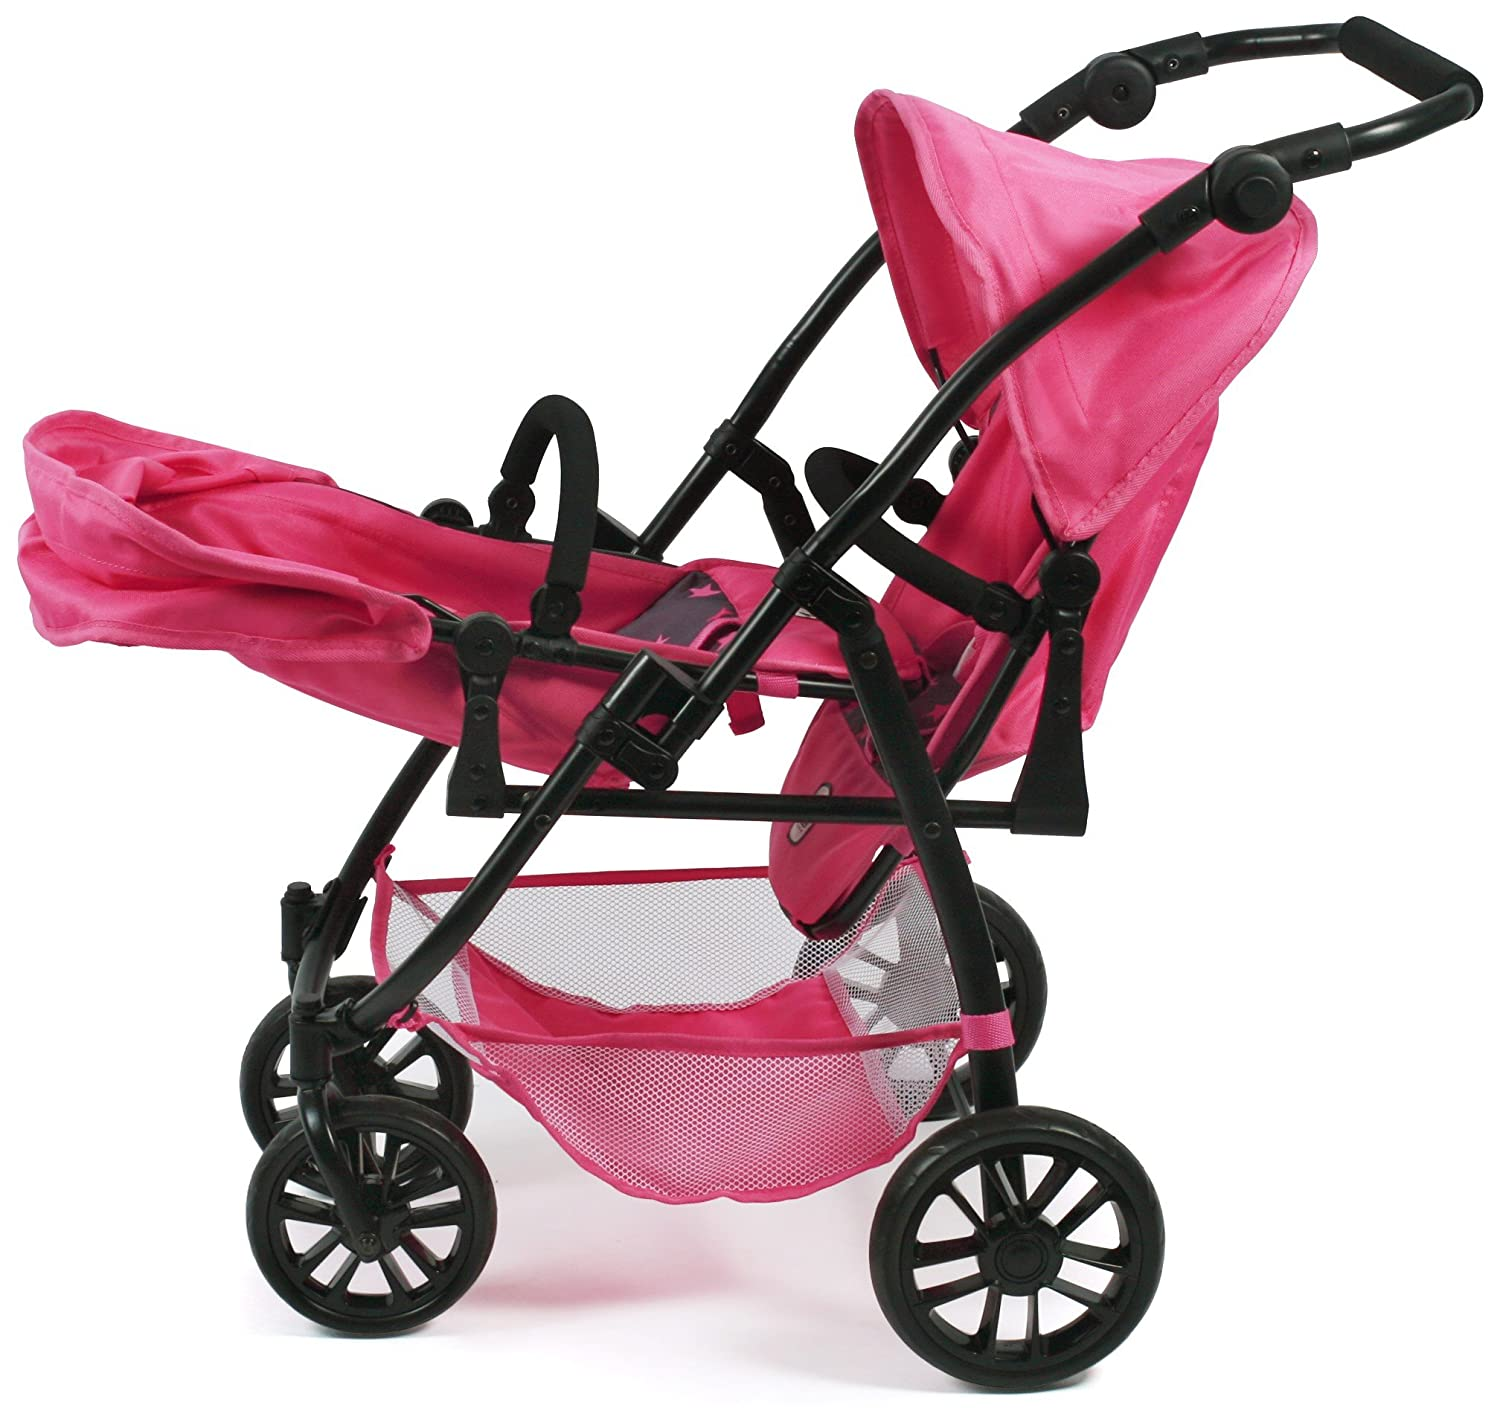 Amazon.com: Bayer Chic 2000 689 82 Tandem Buggy Vario, Twin Dolls Pram, Stars Pink: Toys & Games